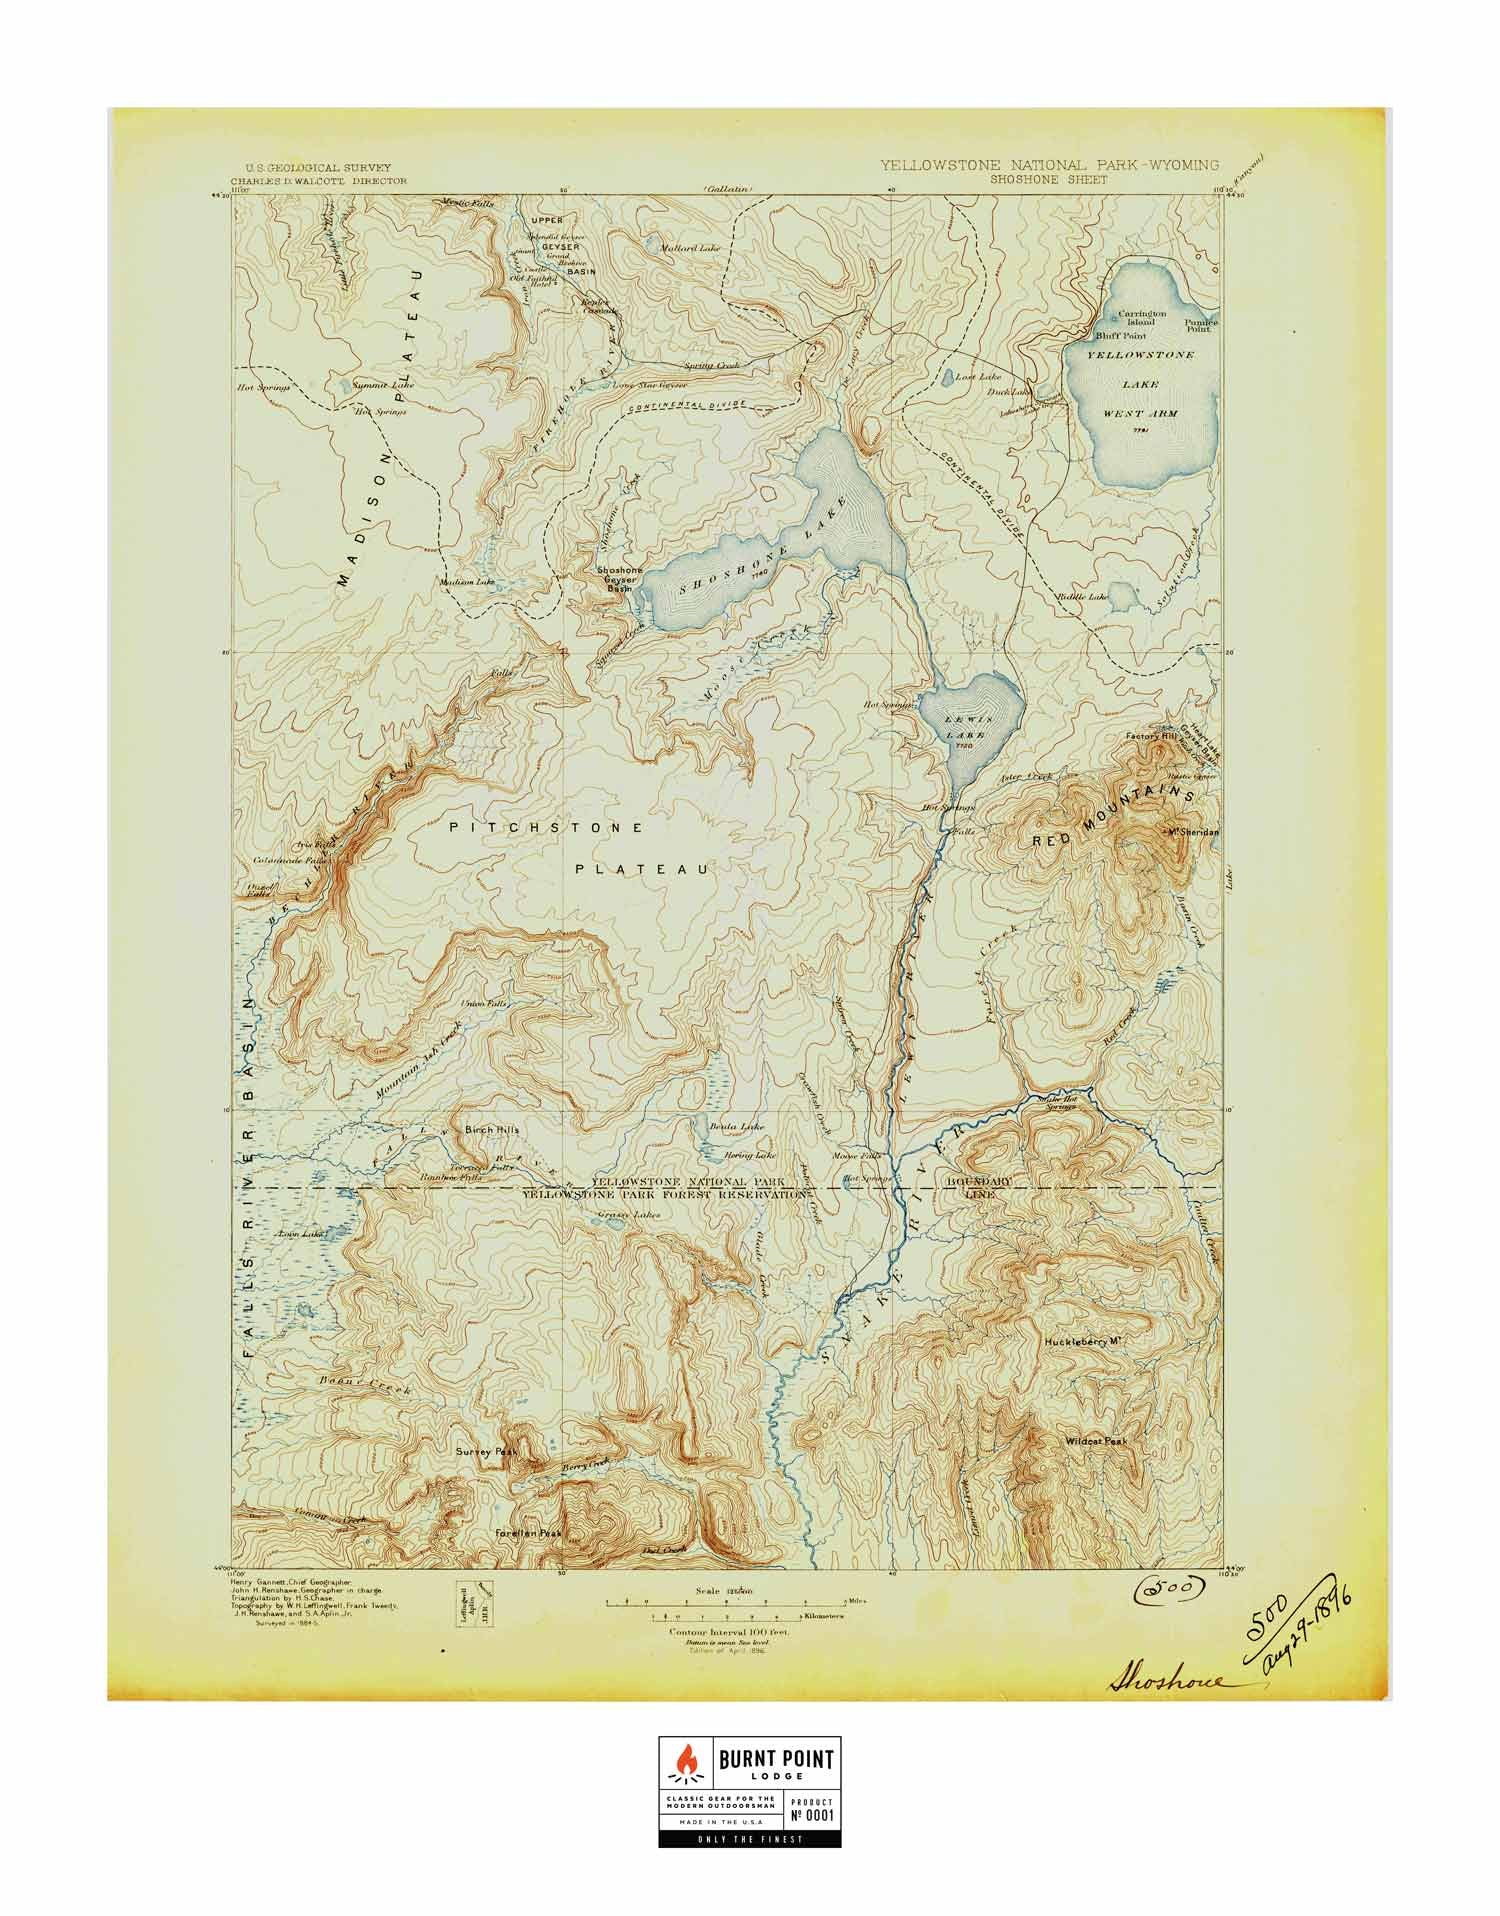 Historic US Topo Maps Of National Parks Burnt Point Lodge - National parks in us map